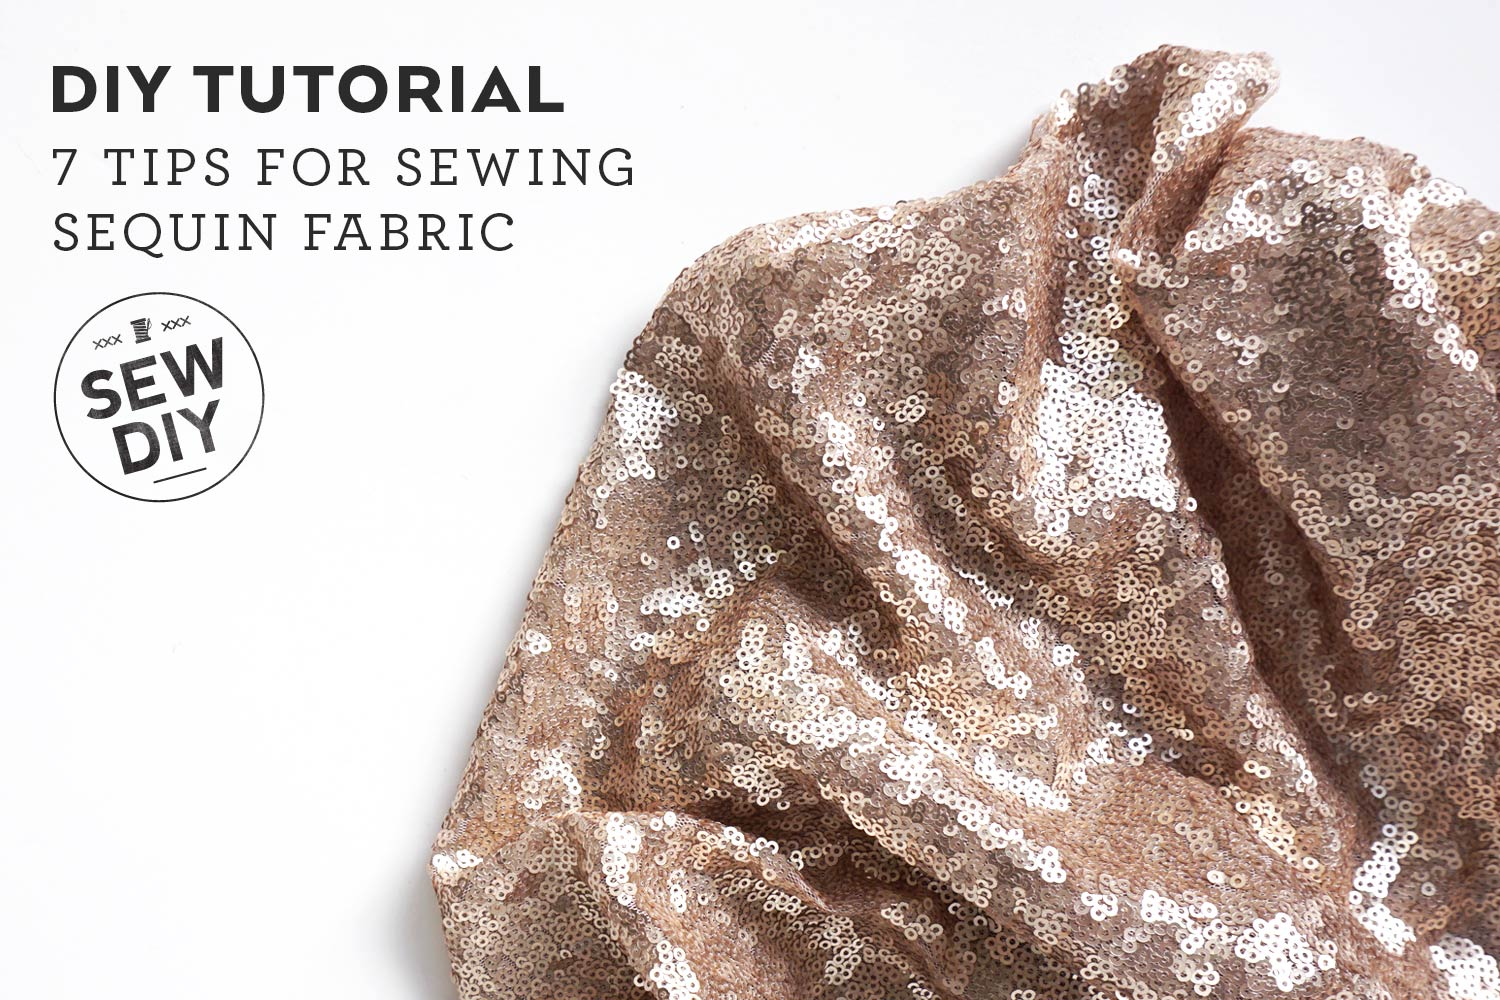 7 Tips for Sewing Sequin Fabric. Click to learn how to master this challenging fabric. . | Sew DIY